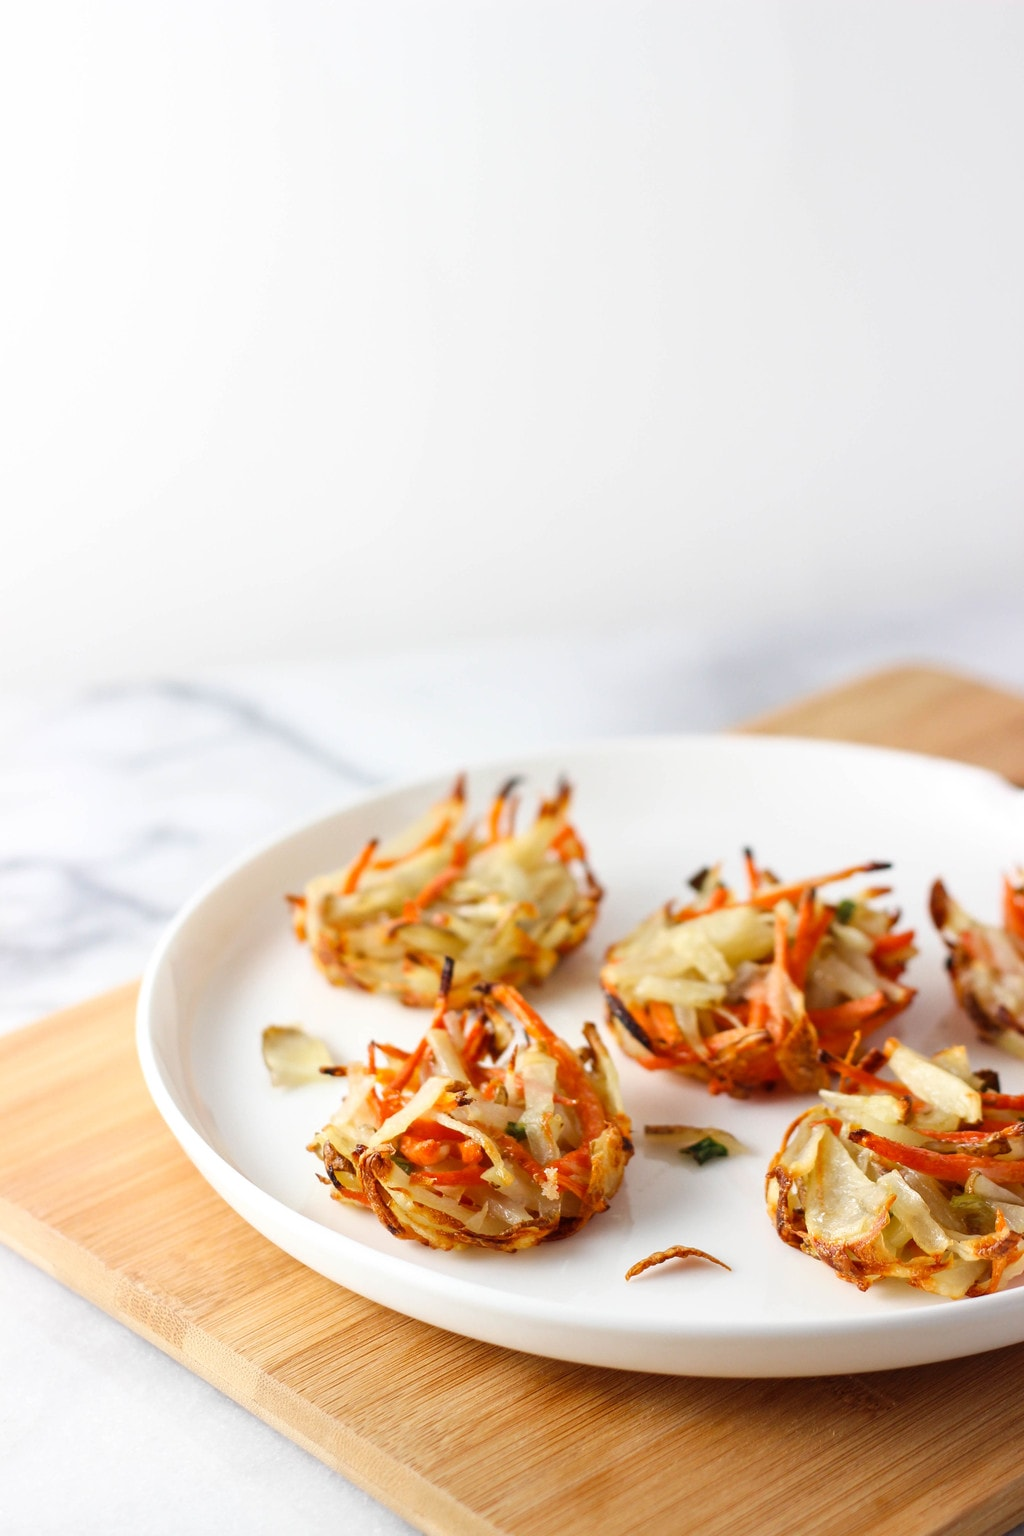 Baked Hash Brown Cakes - Exploring Healthy Foods